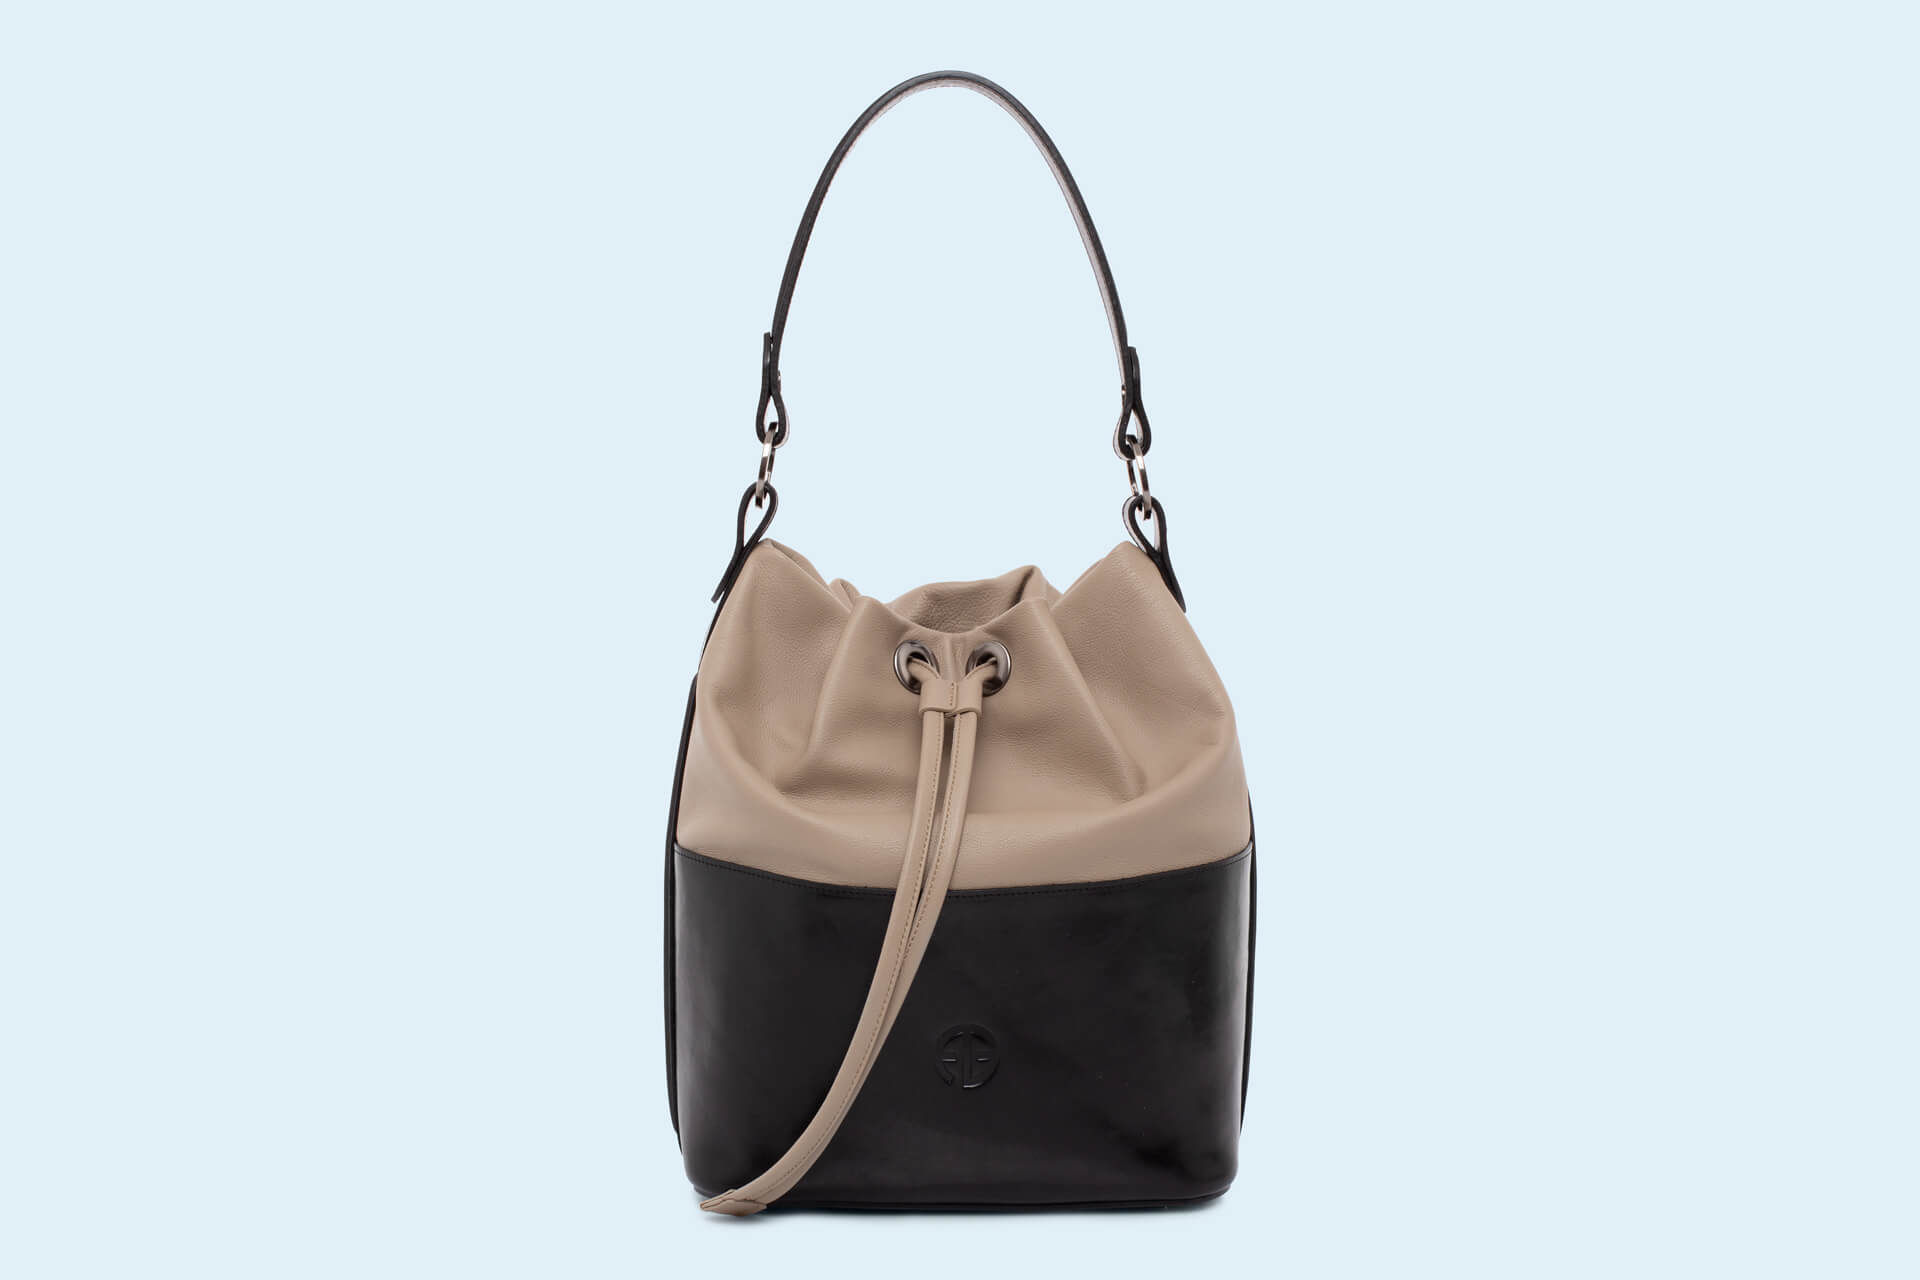 21efbe482676b Torebka damska worek - Verity Bucket bag black earthy